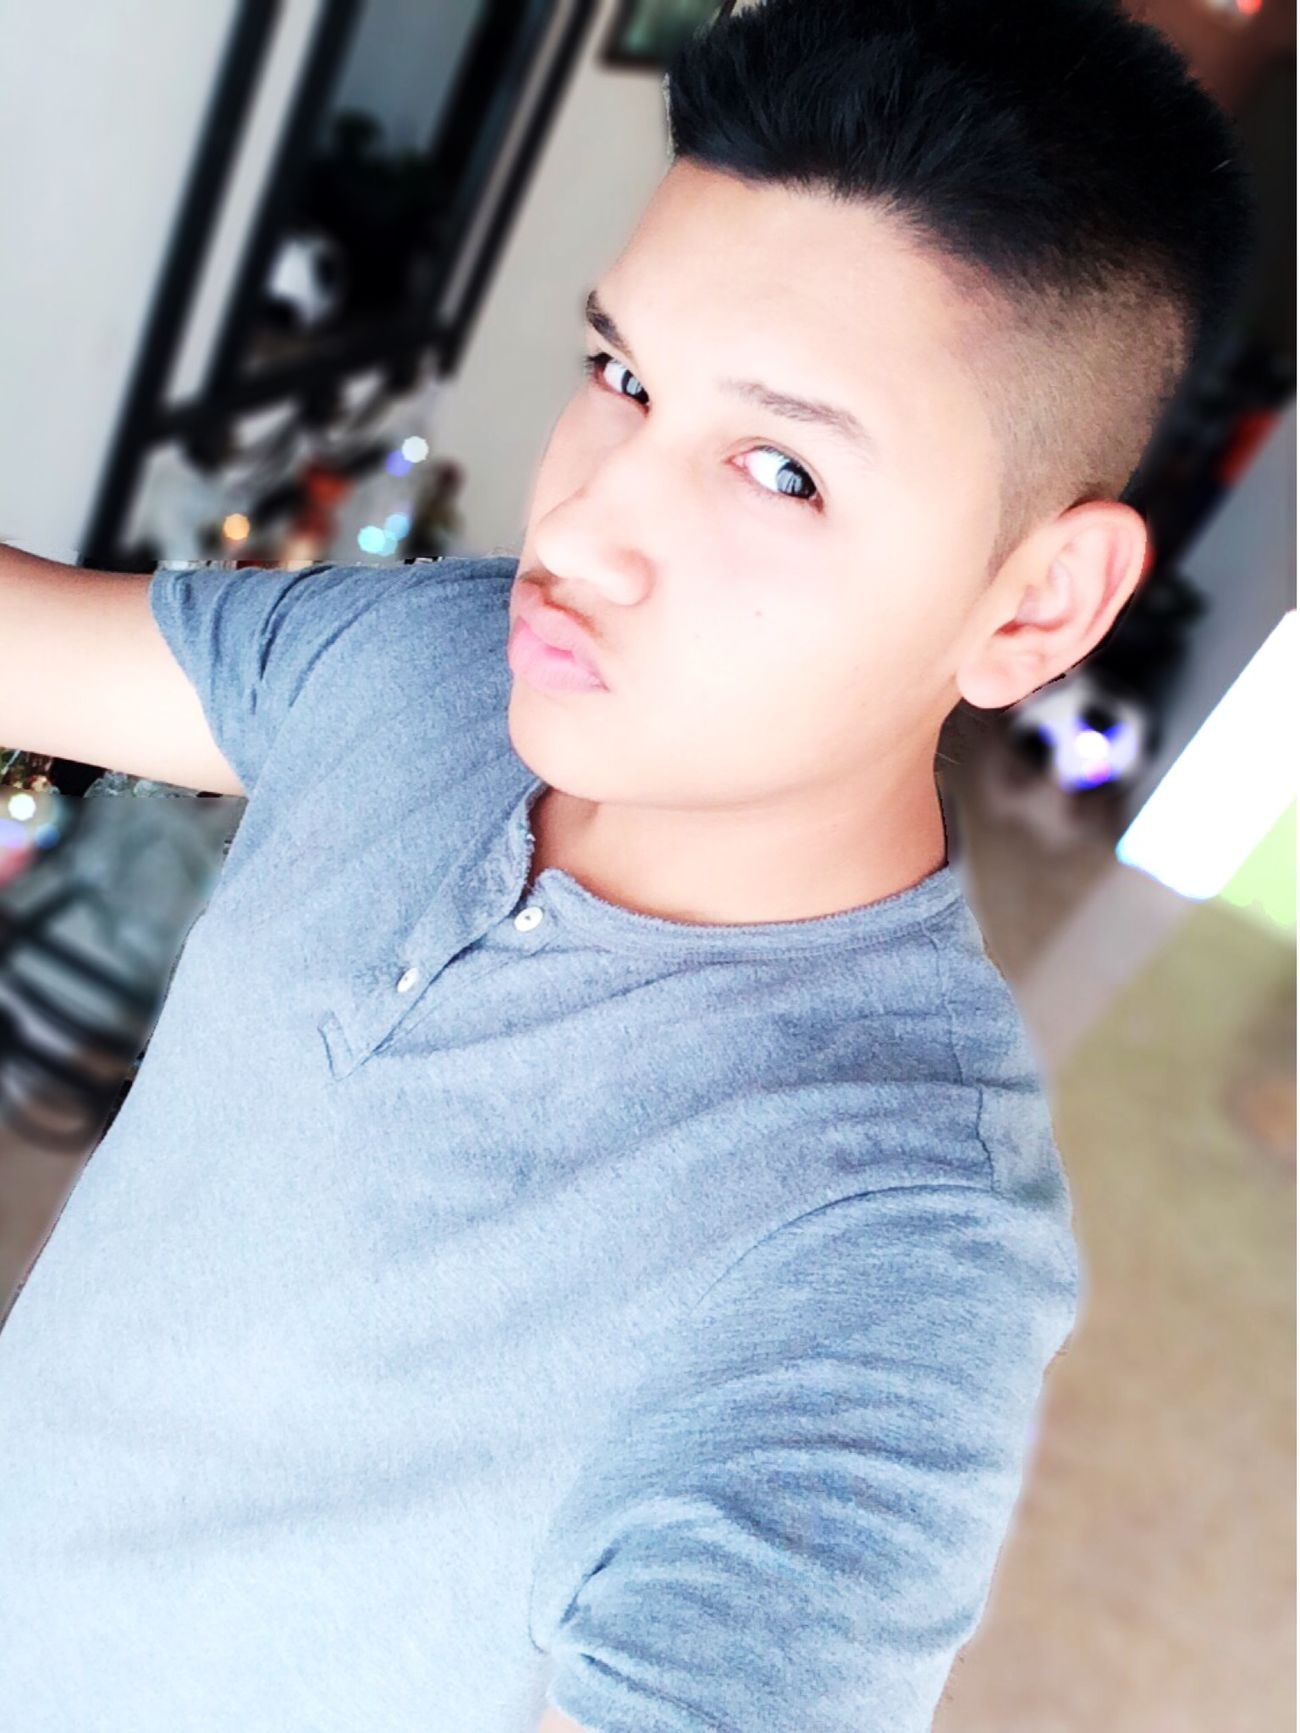 Check This Out That's Me WilverGomez Handsome😍 Today's Hot Look Selfie ✌ Handsome Boy Handsome Todays Selfie